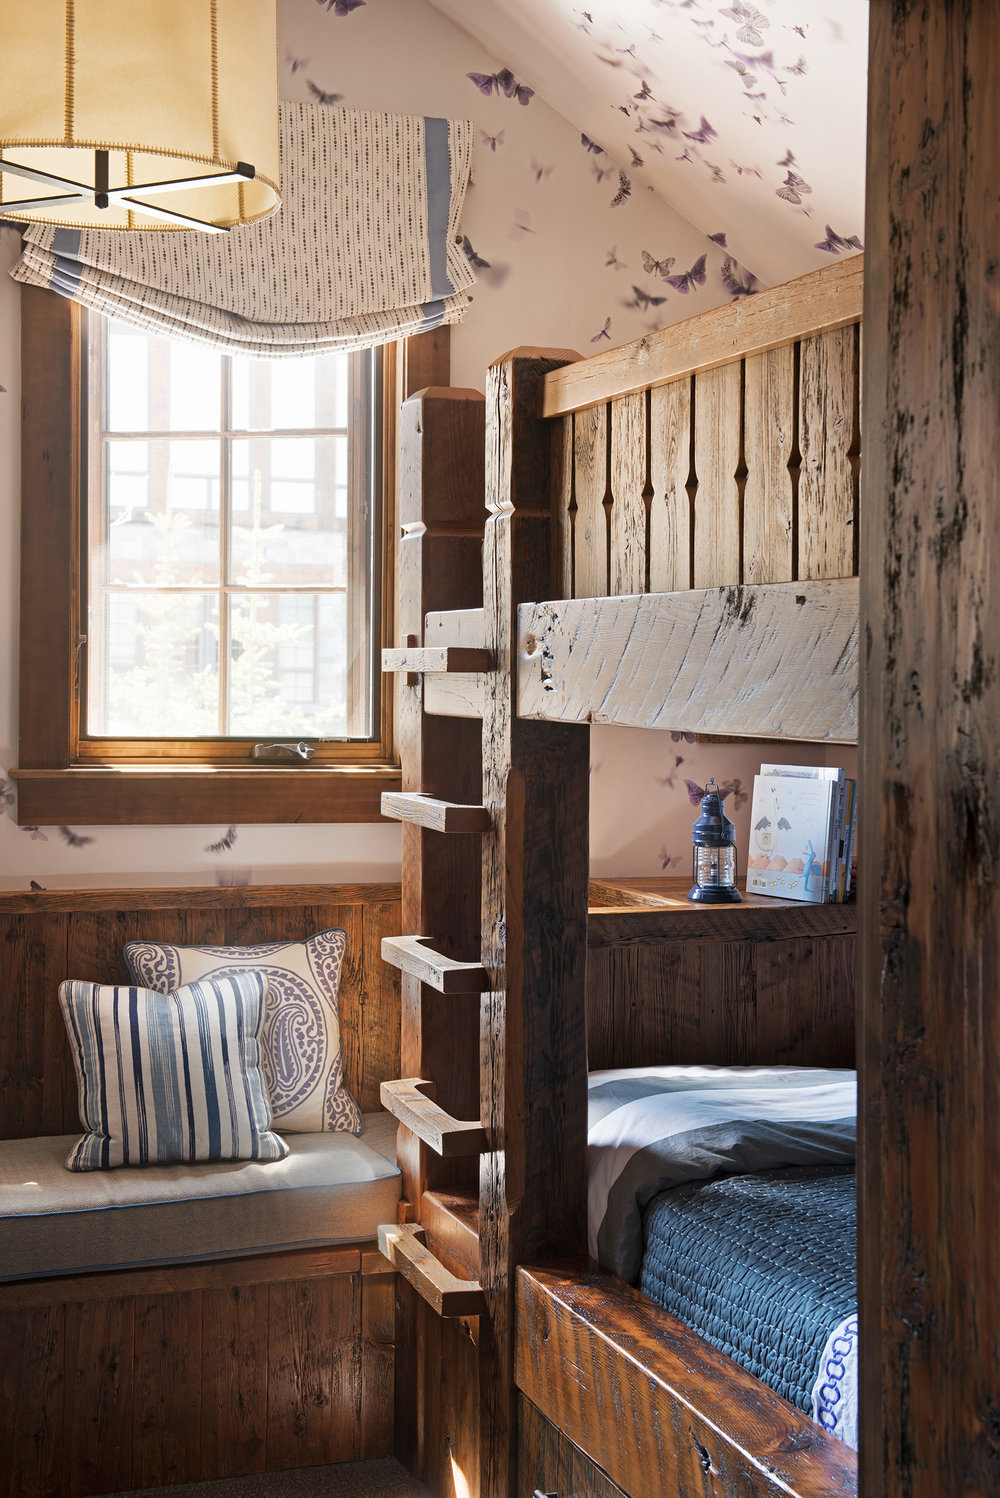 This bunkbed was custom made for this space and I absolutely love the butterfly wallpaper!